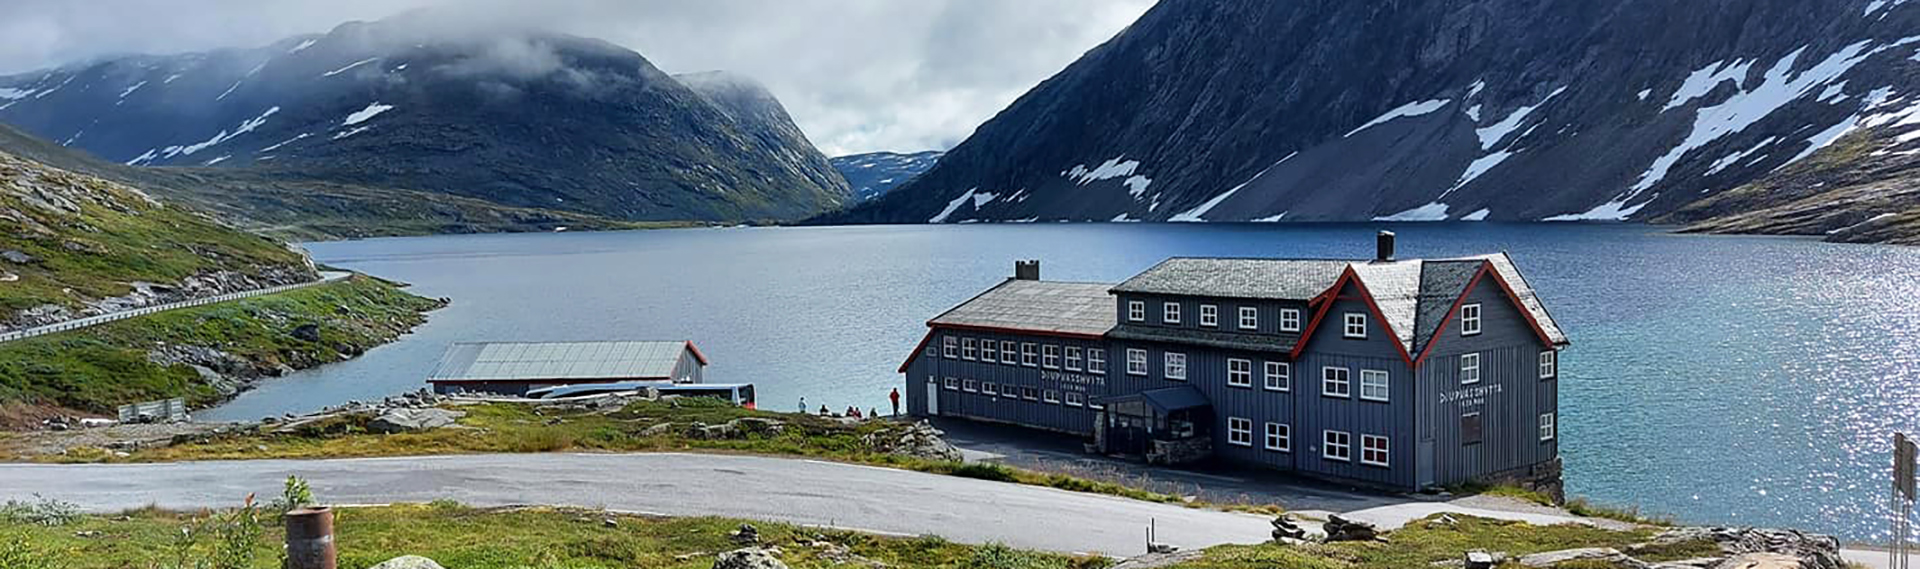 Dalsnibba, Norway